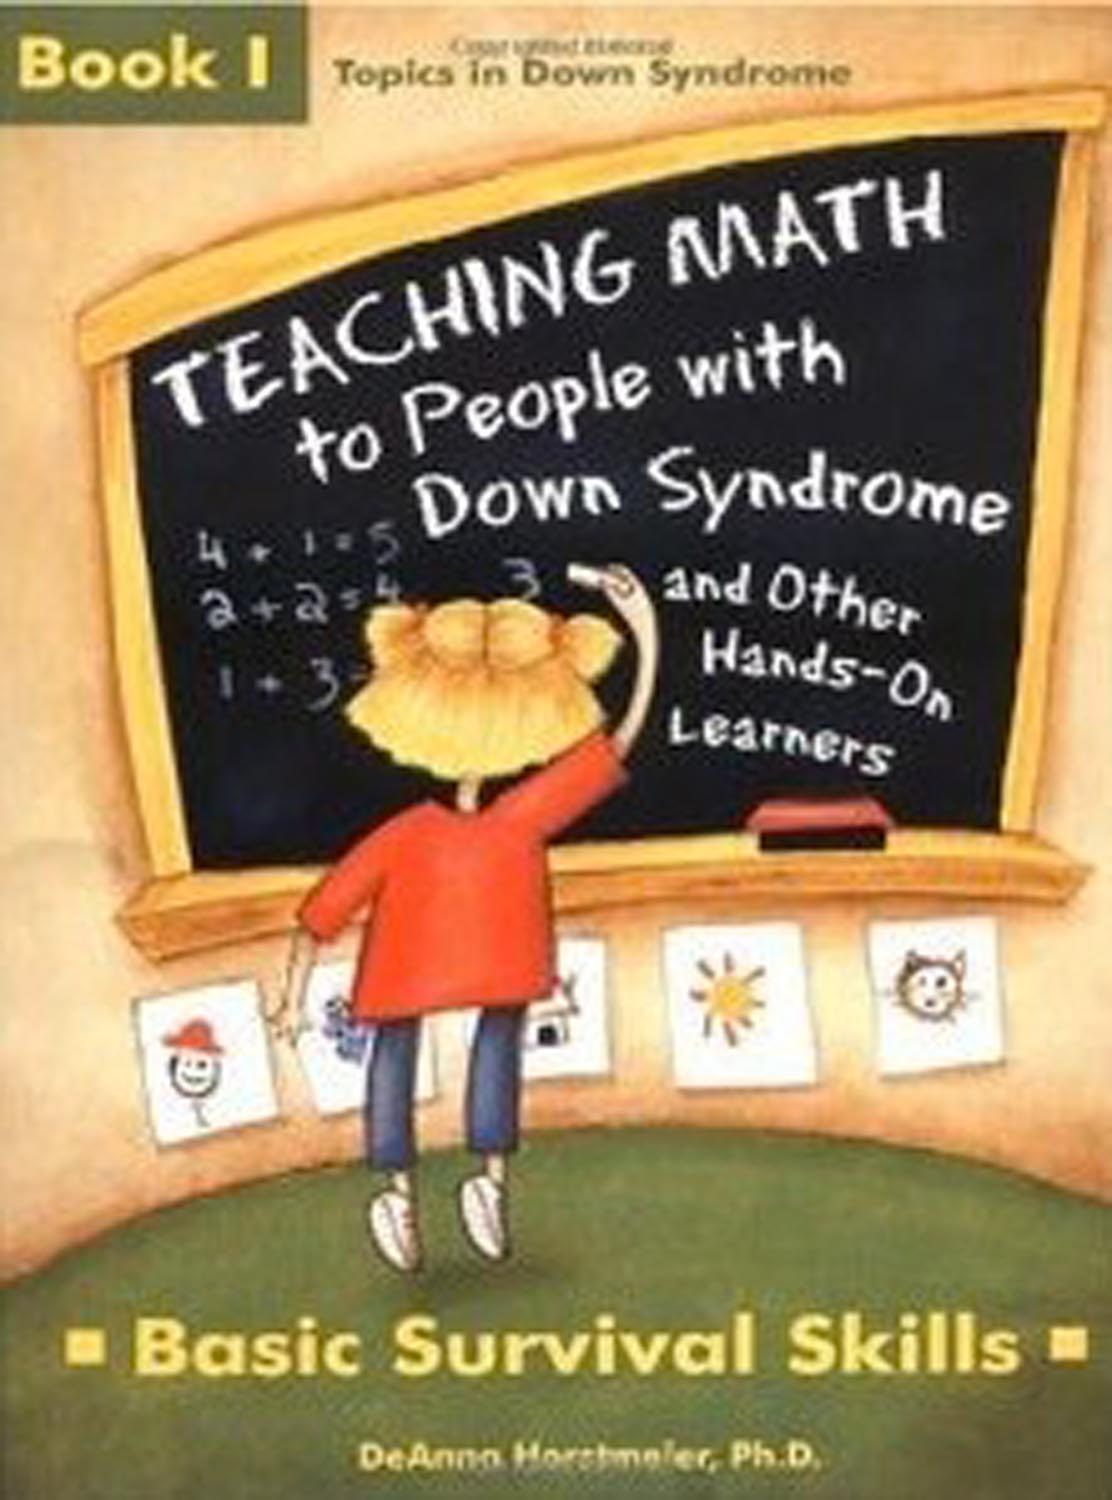 NUM25-43-teaching-math-book1